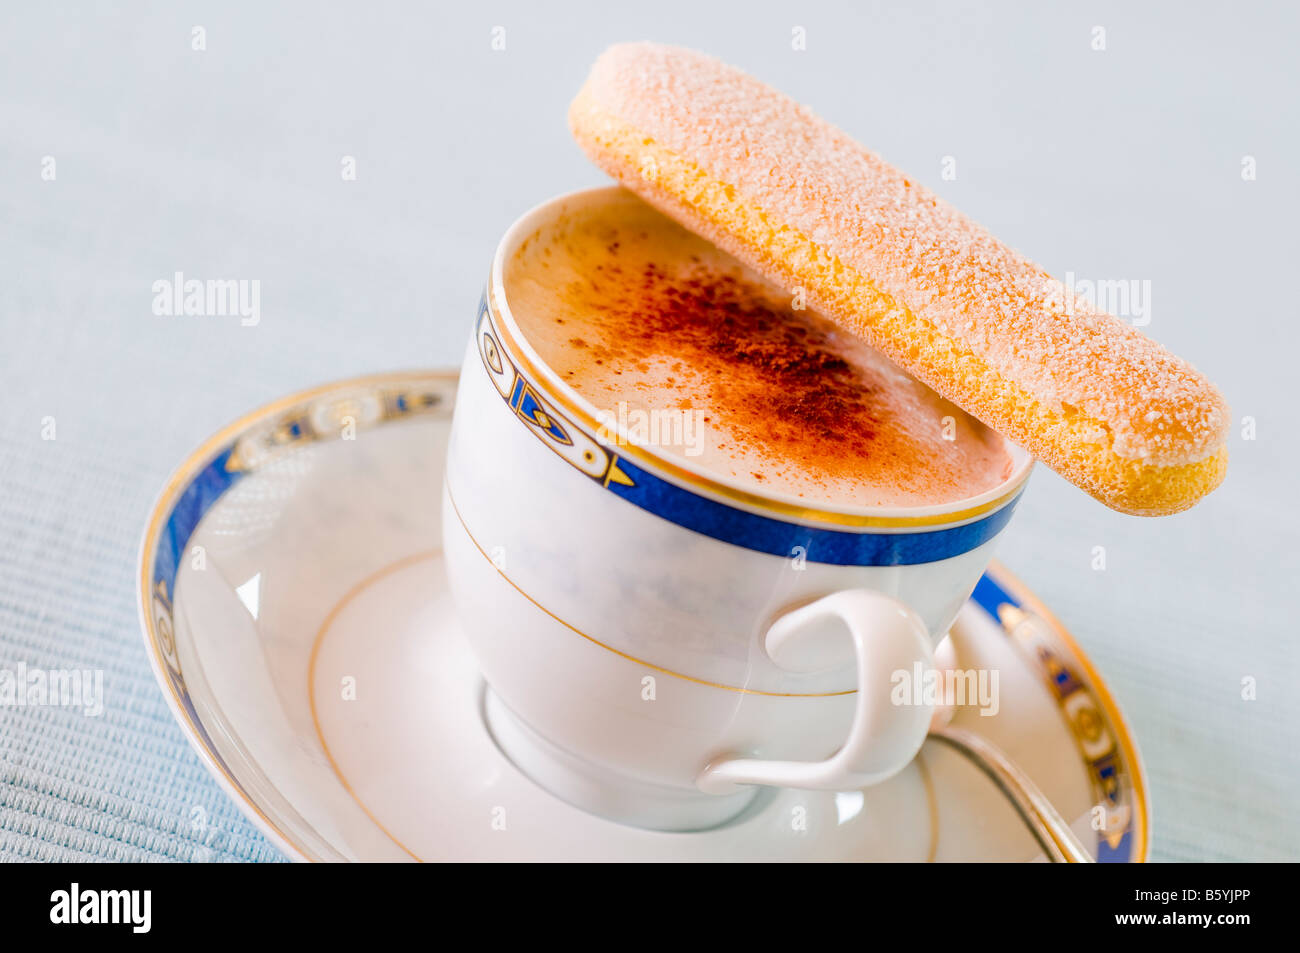 Cappuccino in white porcelain cup - Stock Image